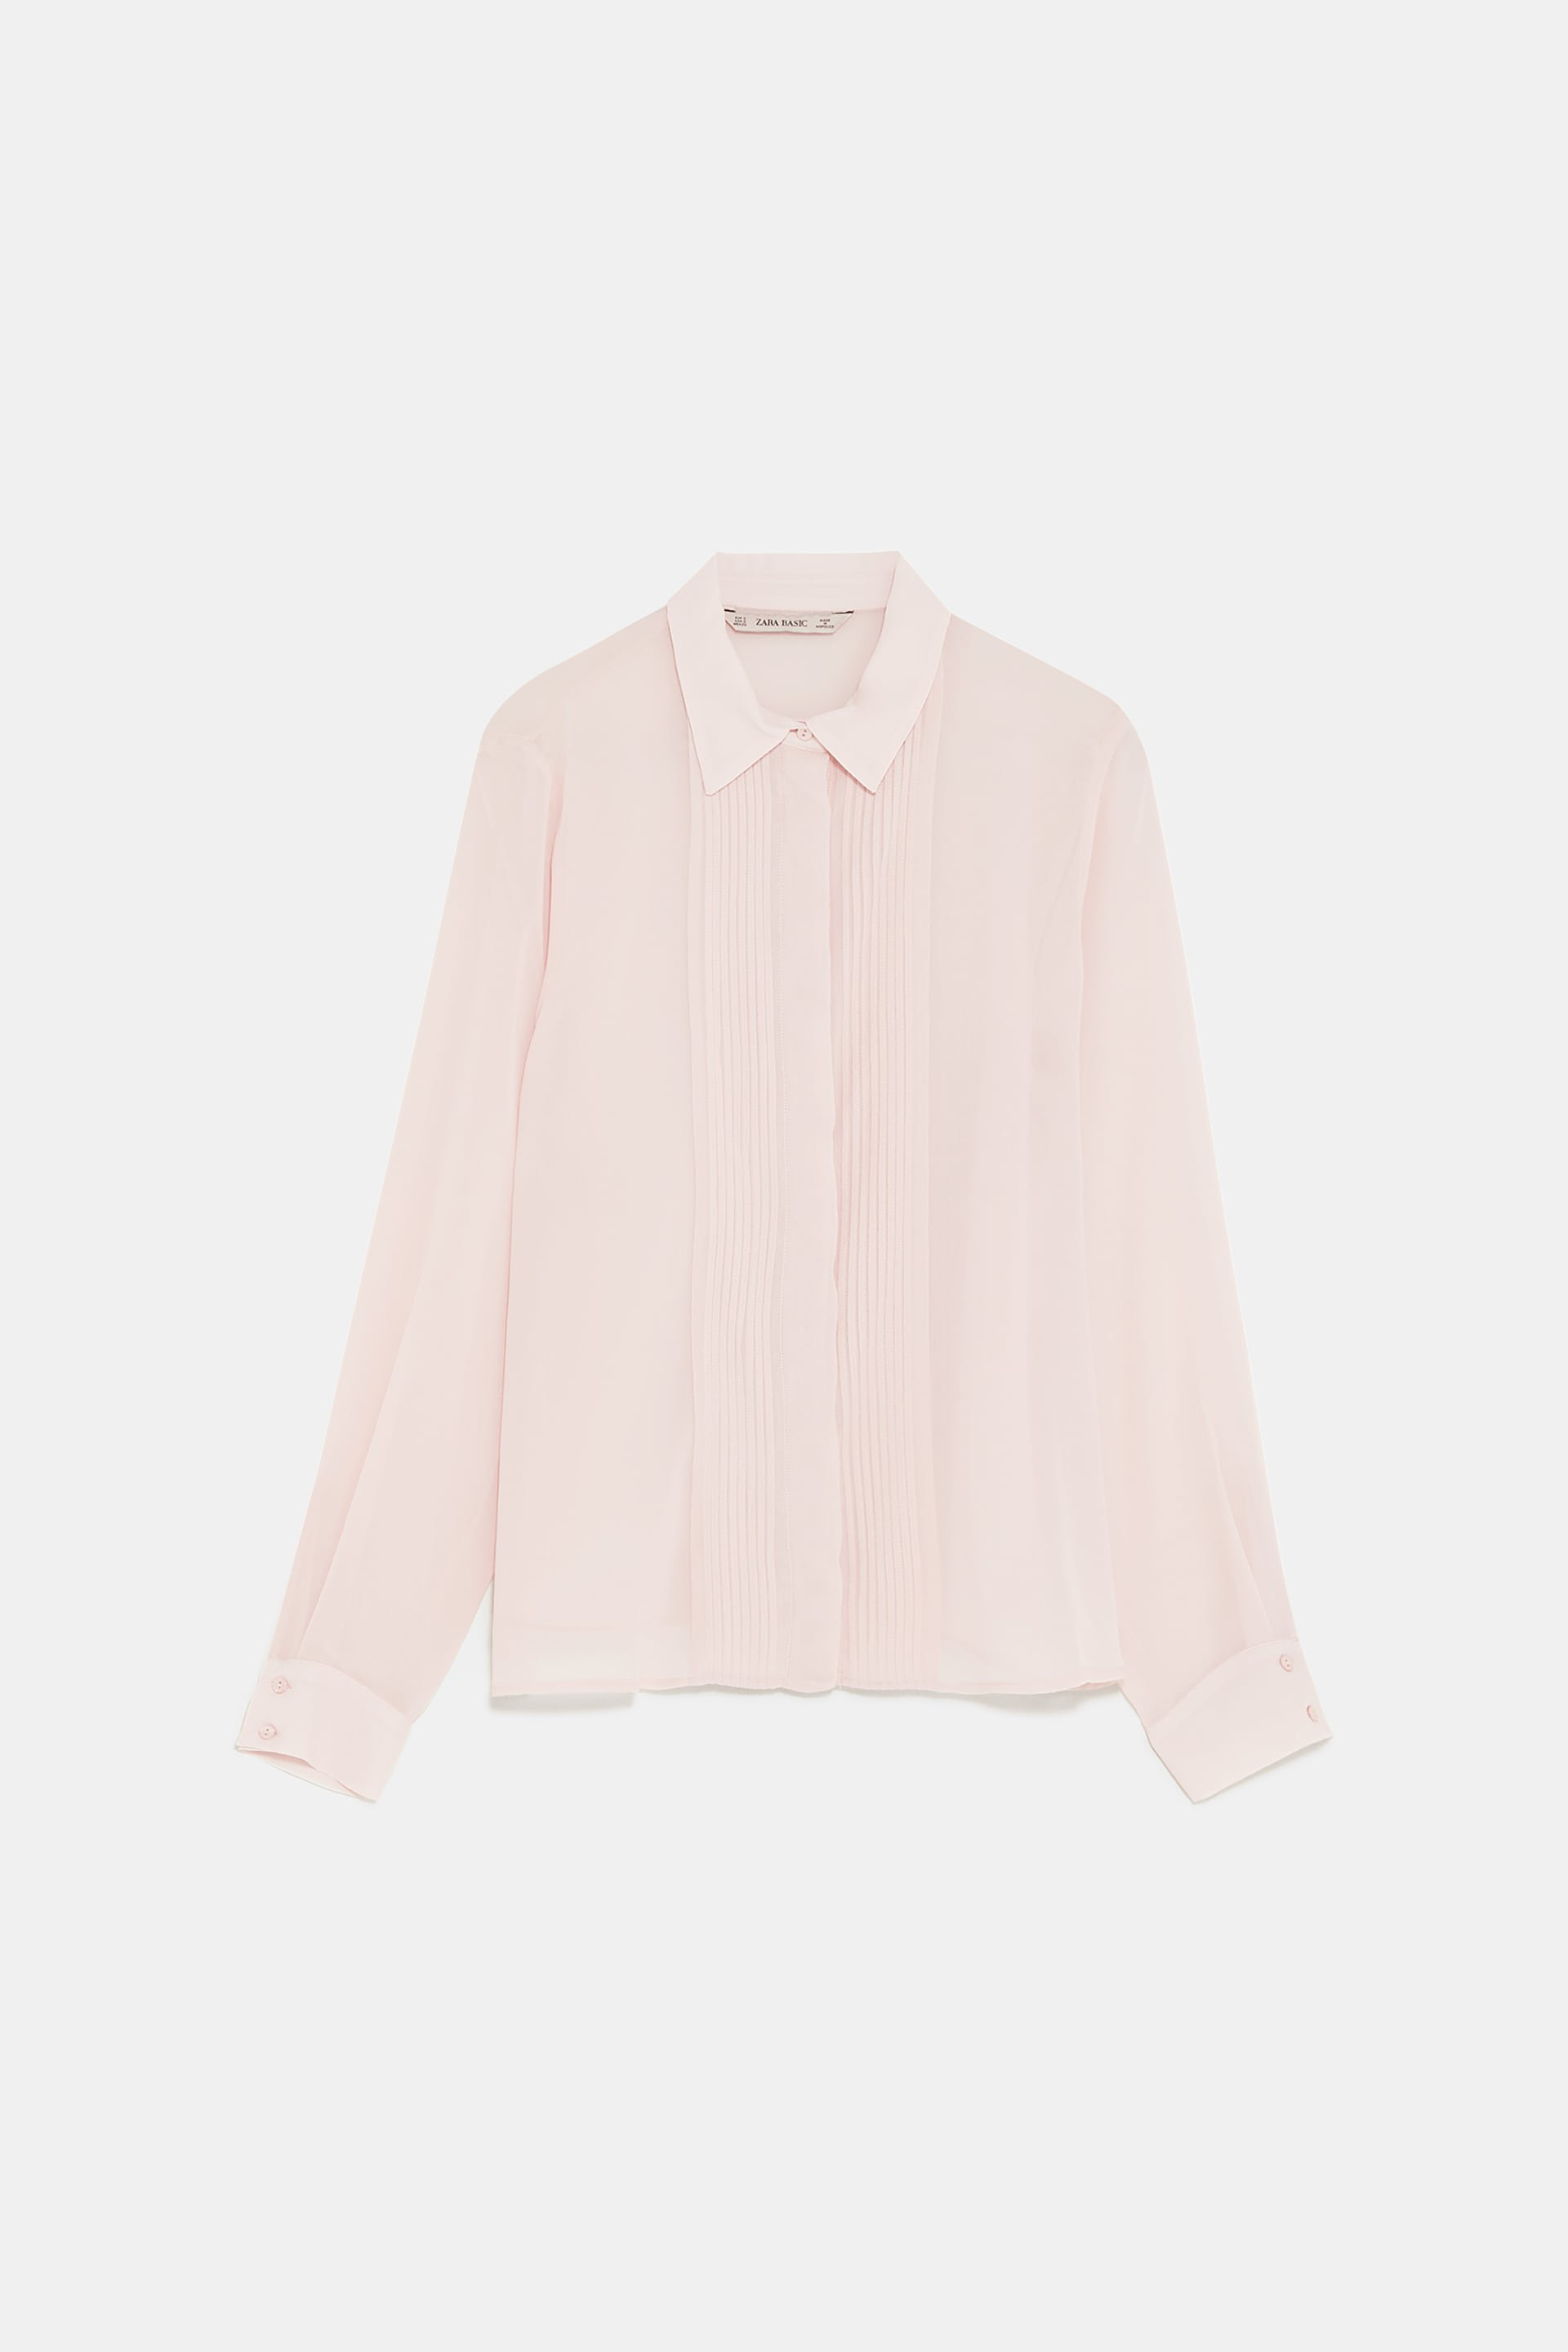 PINTUCK TOP - View All-SHIRTS | BLOUSES-WOMAN | ZARA United States